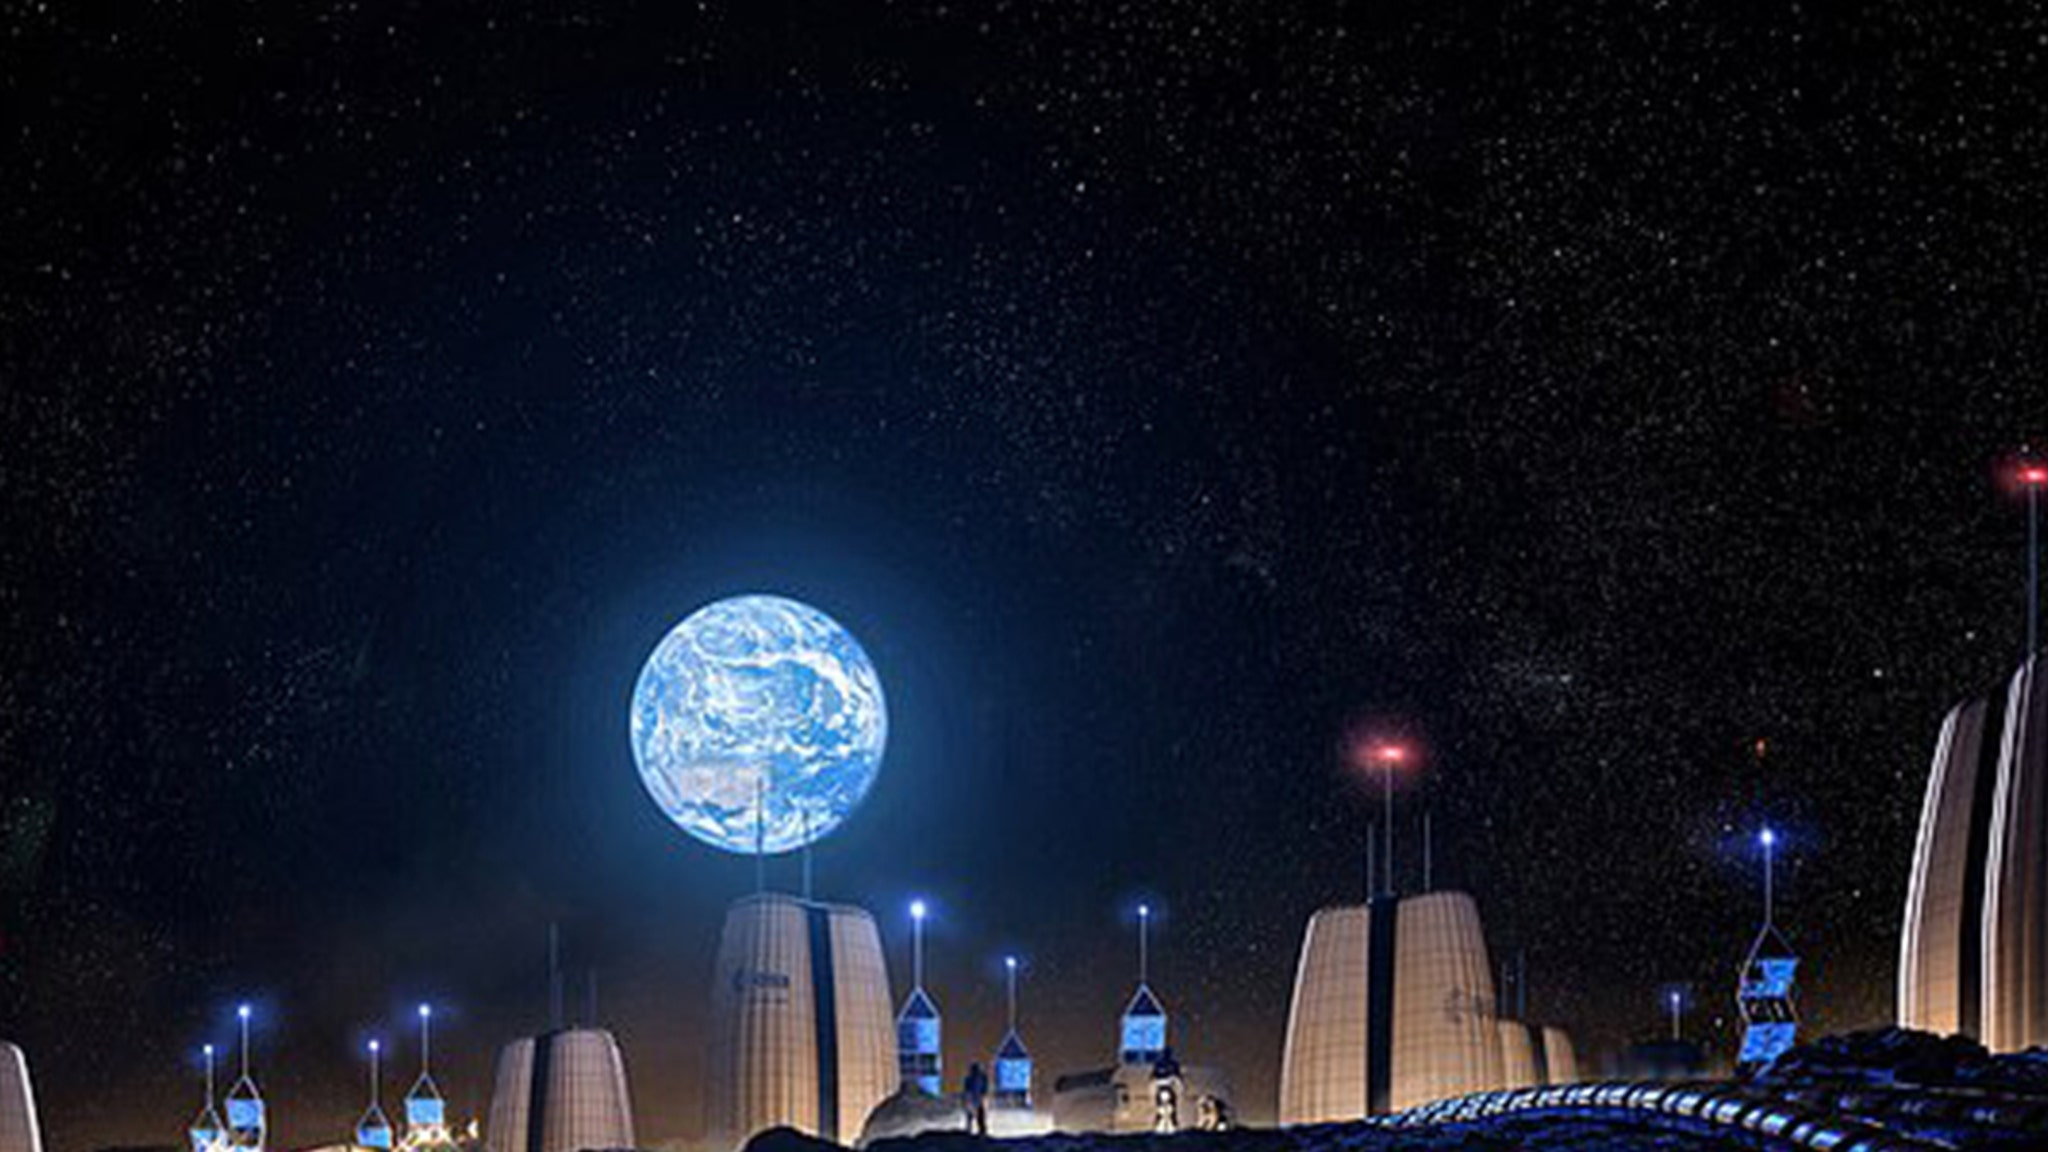 Space Exploration Moon Colony Planned to House Astronauts